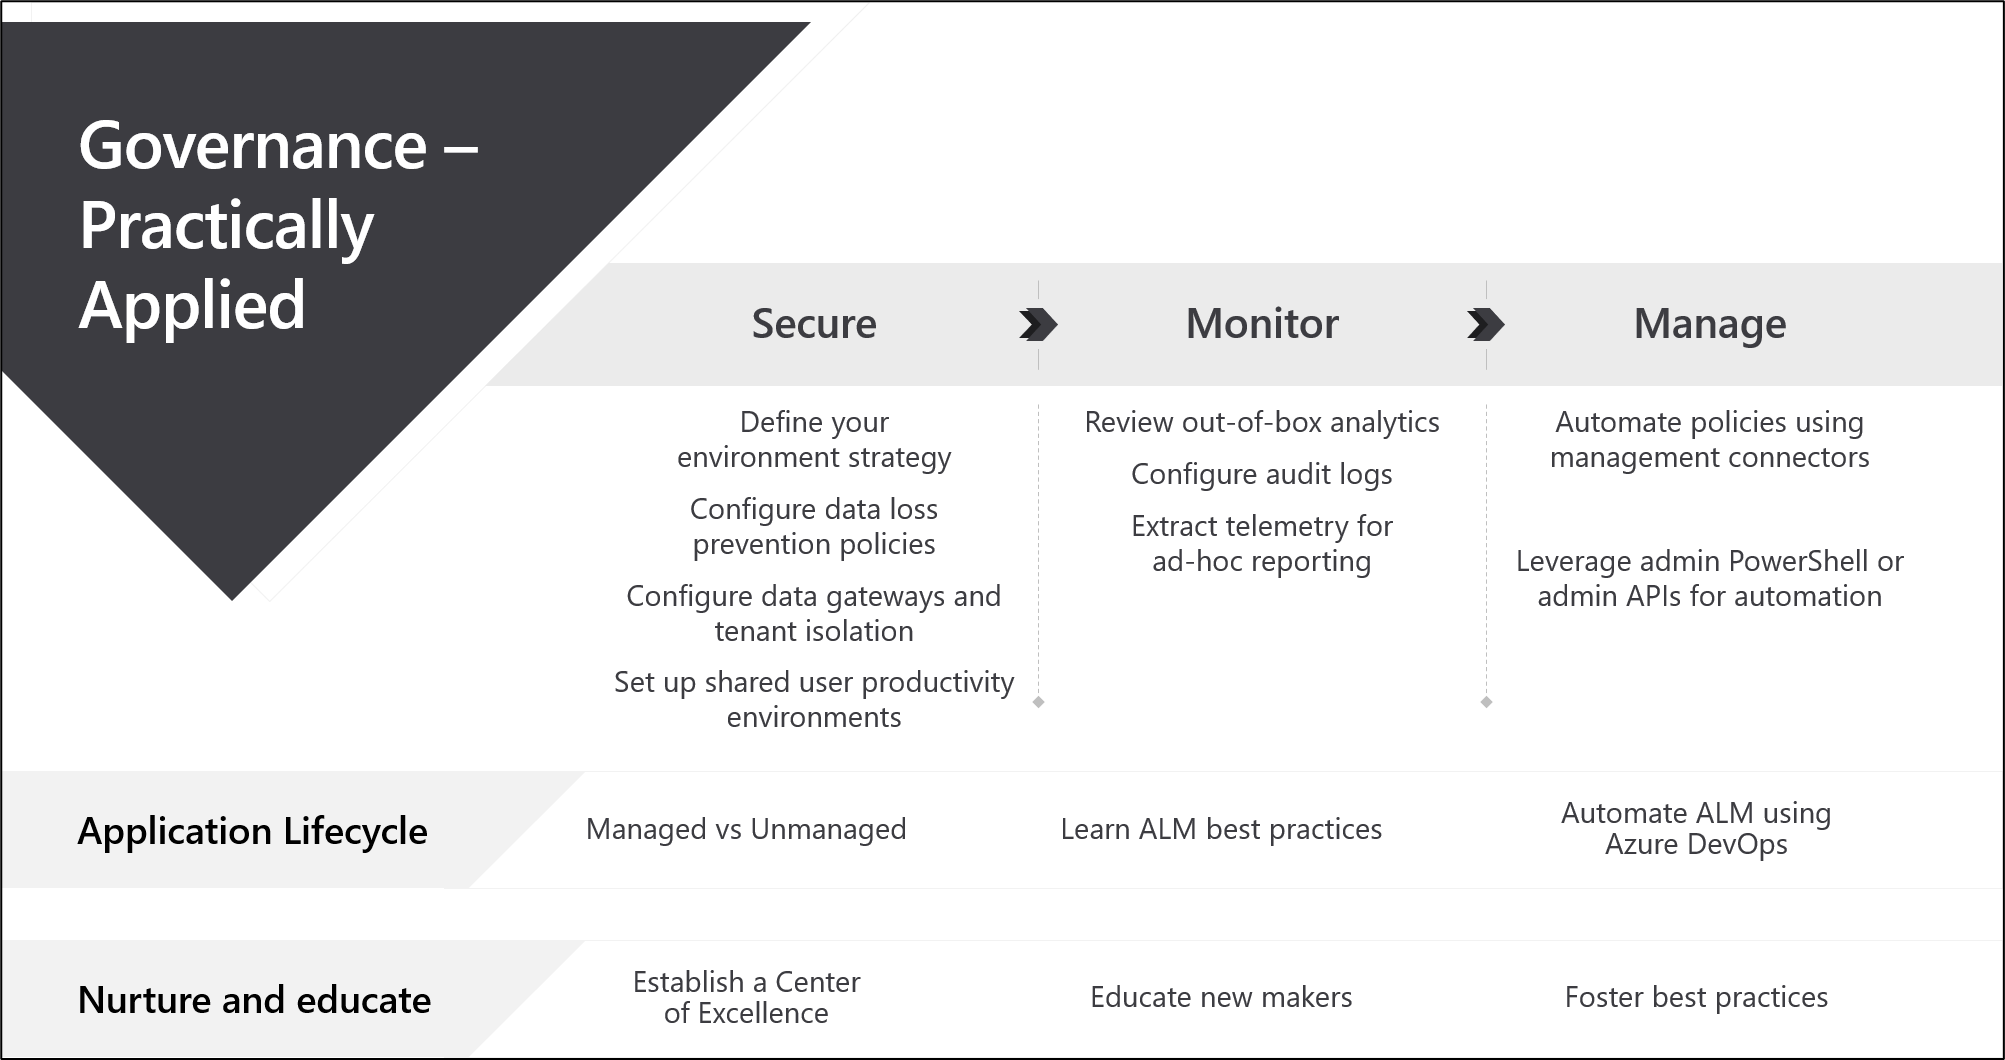 The Power Platform multi-step governance strategy